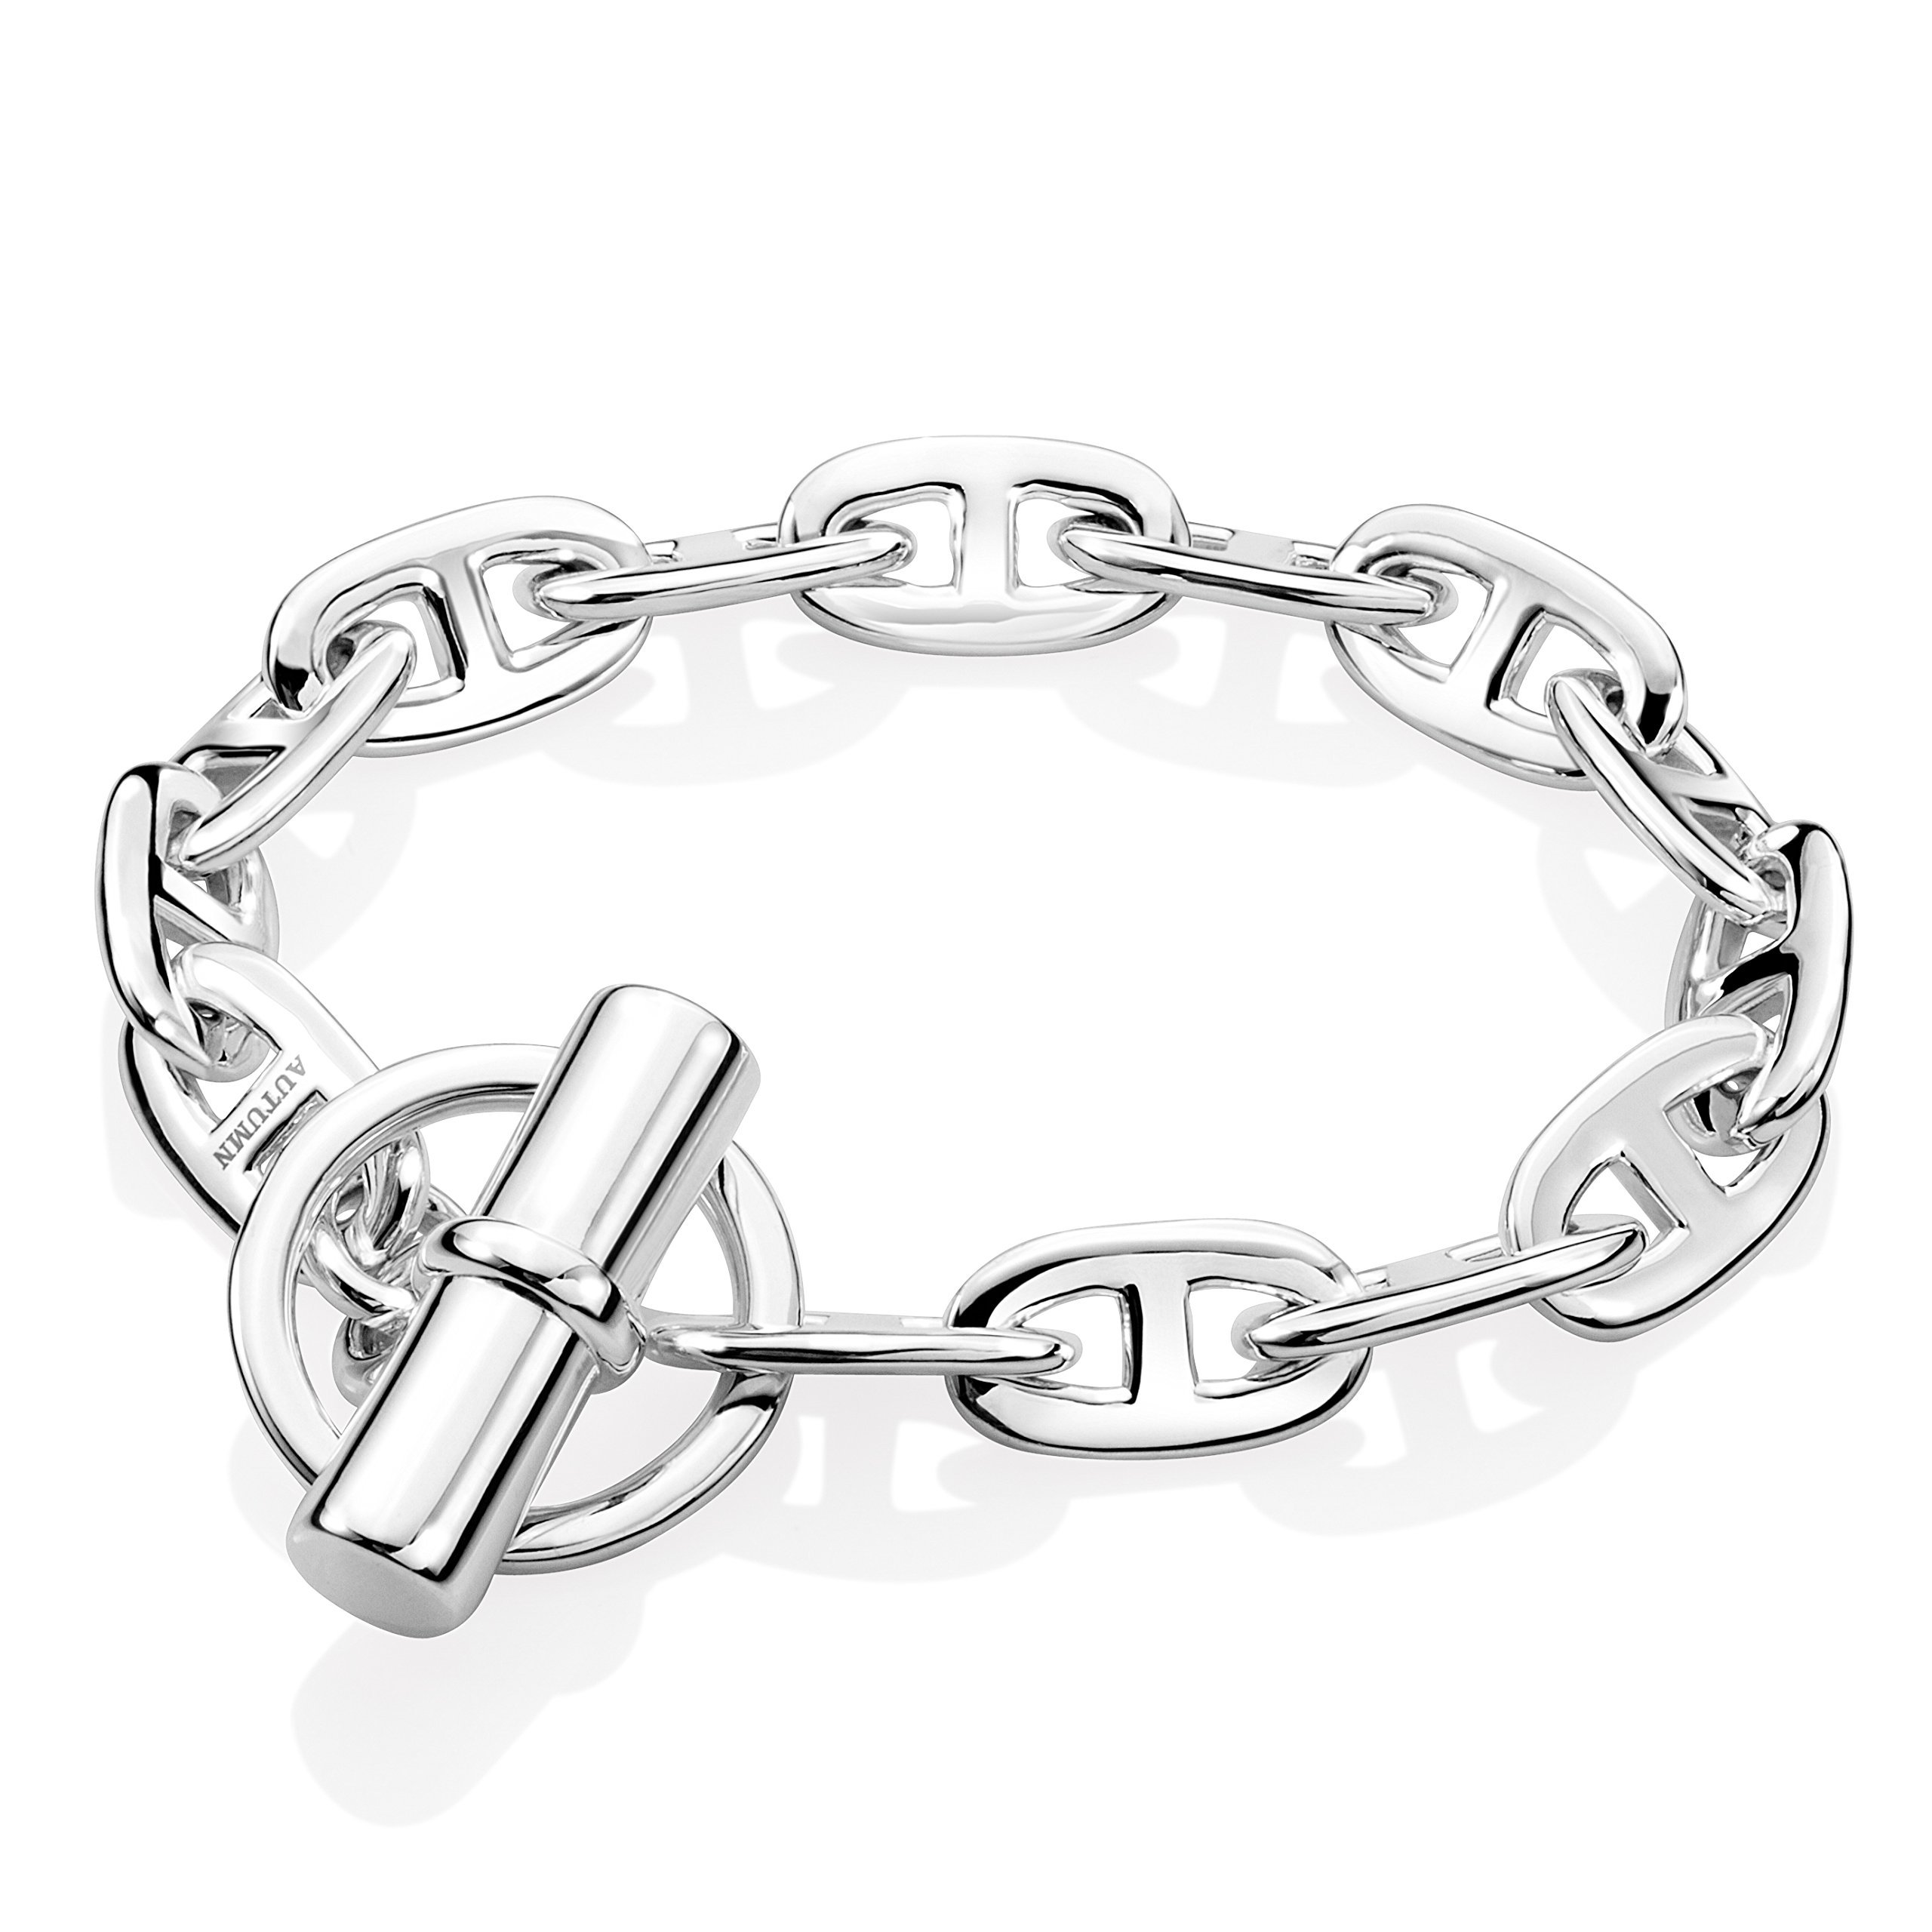 Autumn Enchanted Women 925 Sterling Silver Bracelet 10 mm Wide Anchor Chain Style (7.5 In.)